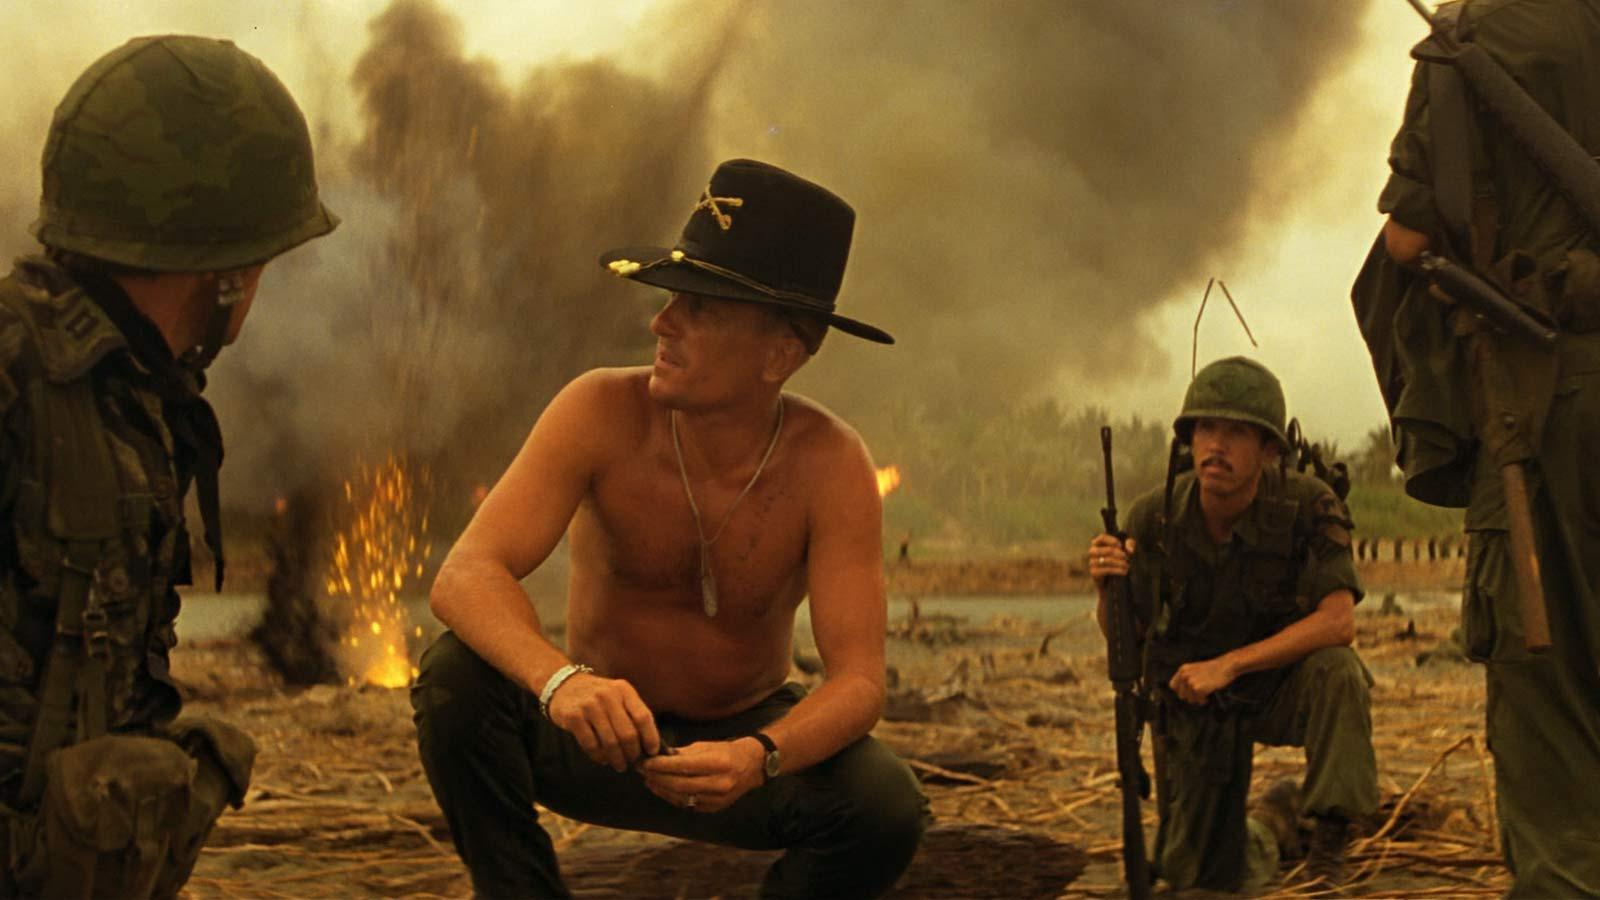 Image gallery for Apocalypse Now